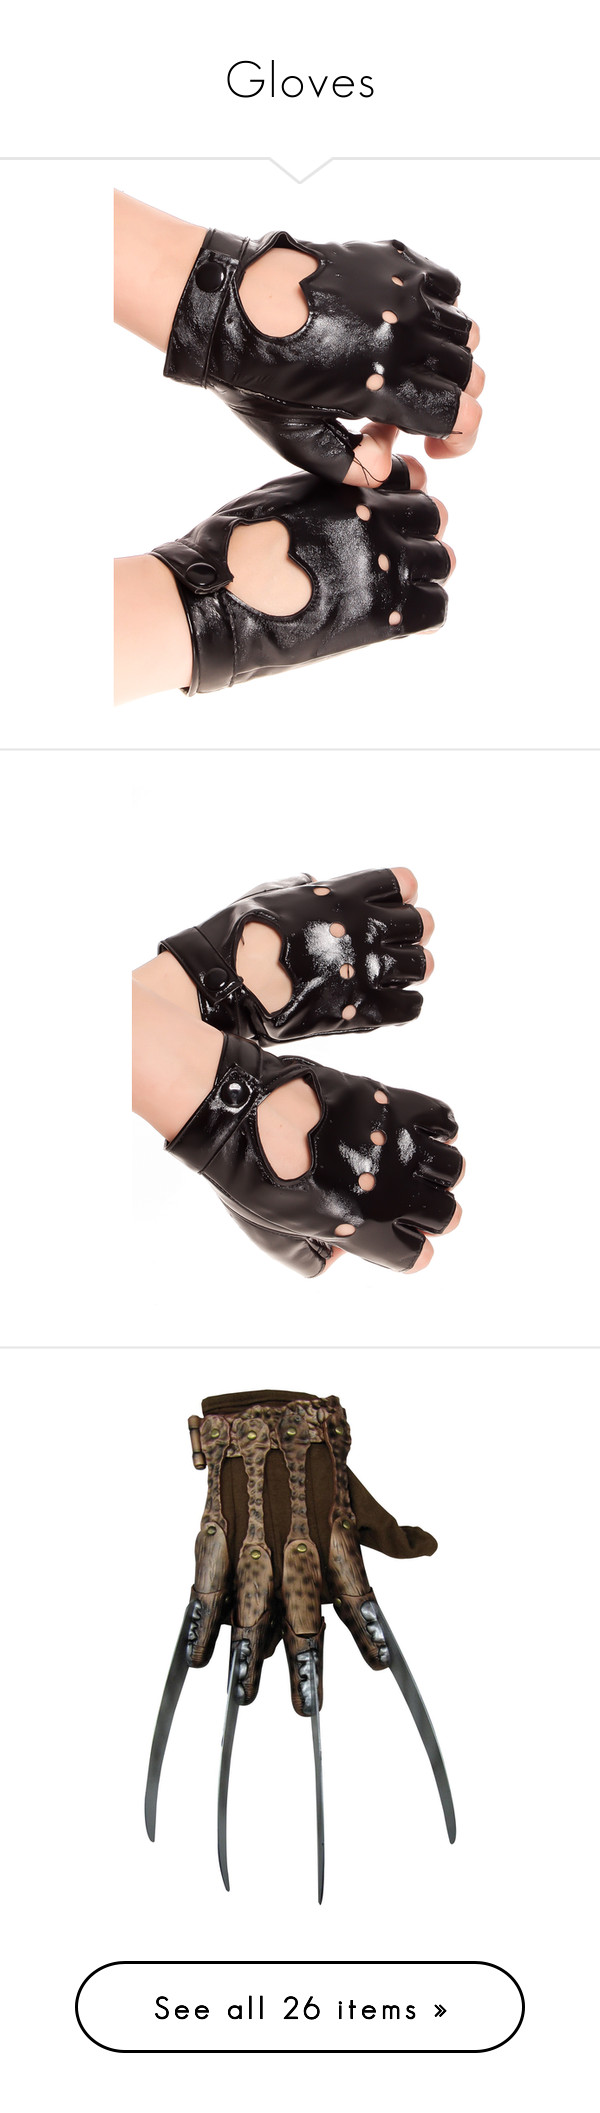 Fake leather driving gloves -  Gloves By Demonqueen99 Liked On Polyvore Featuring Accessories Gloves Black Leather Glovesvegans